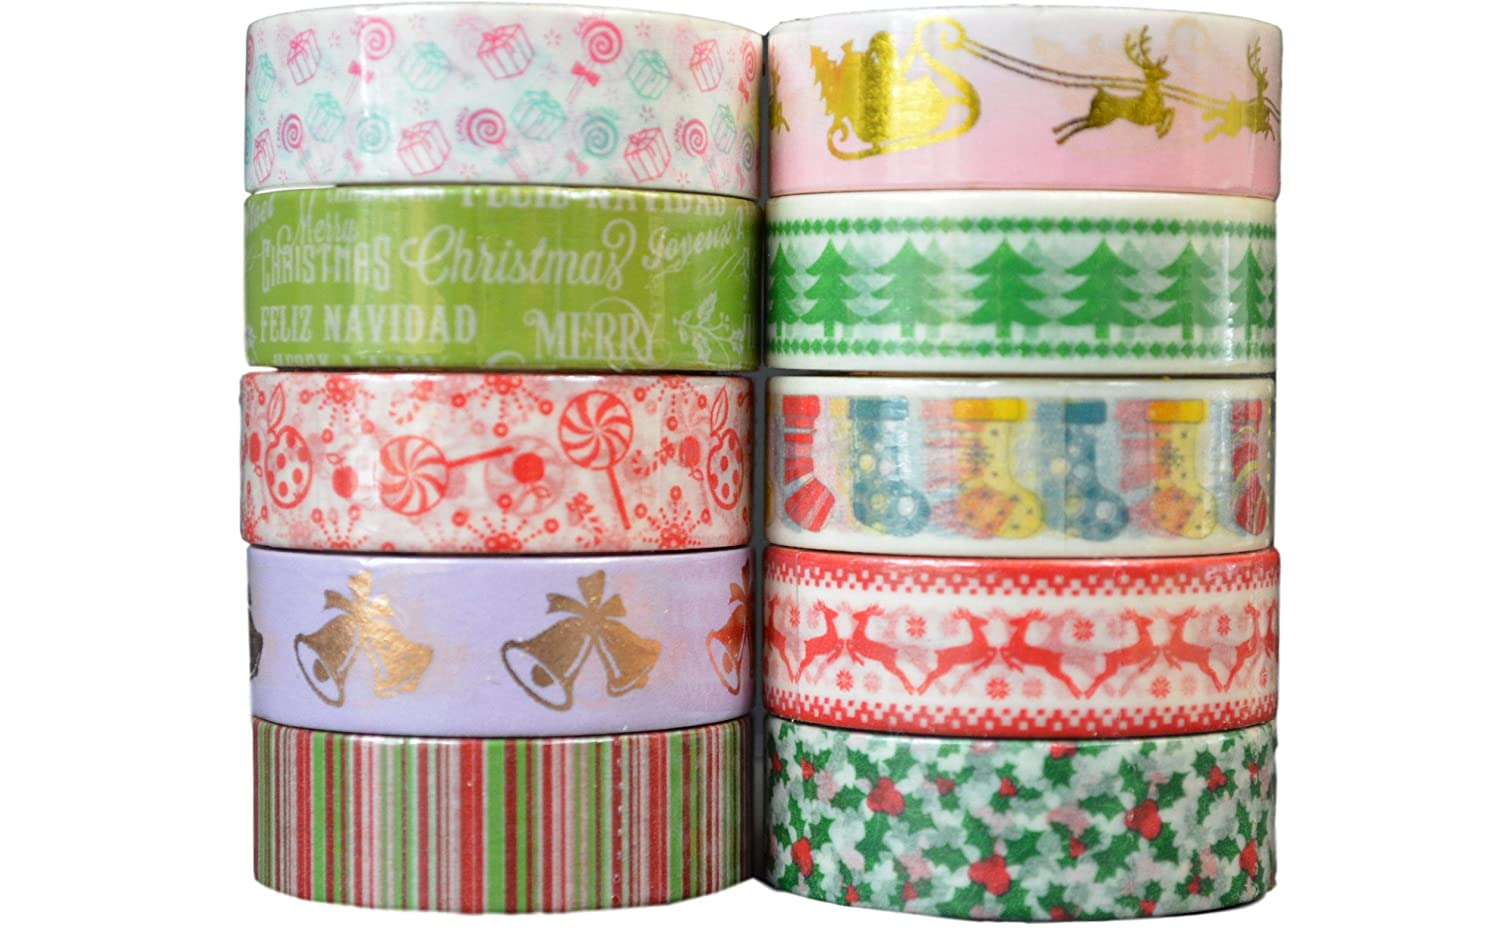 Crafty Rolls Decorative Washi Tape Set of 10 Rolls Assortment of Christmas Holiday Designs & Shapes for Scrapbooking Crafts & Gifts - Xmas